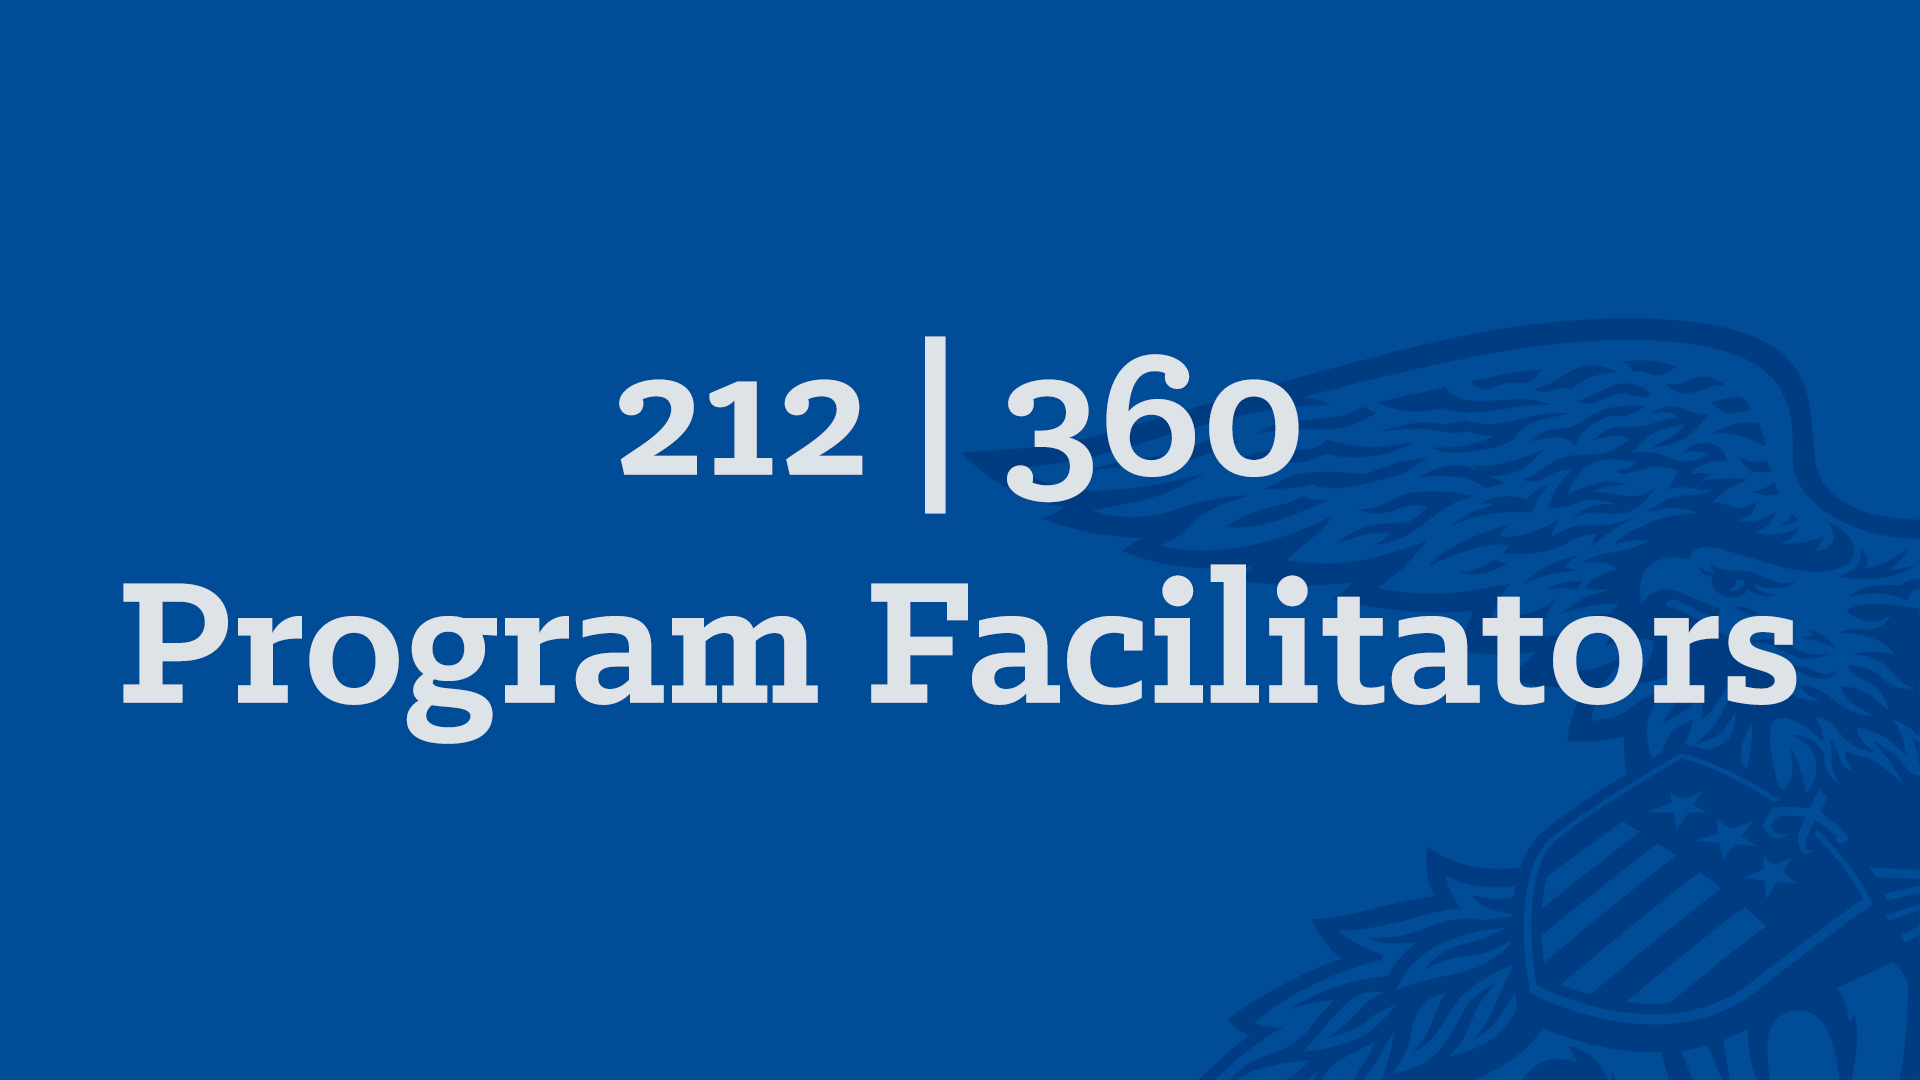 212-360 Program Facilitators